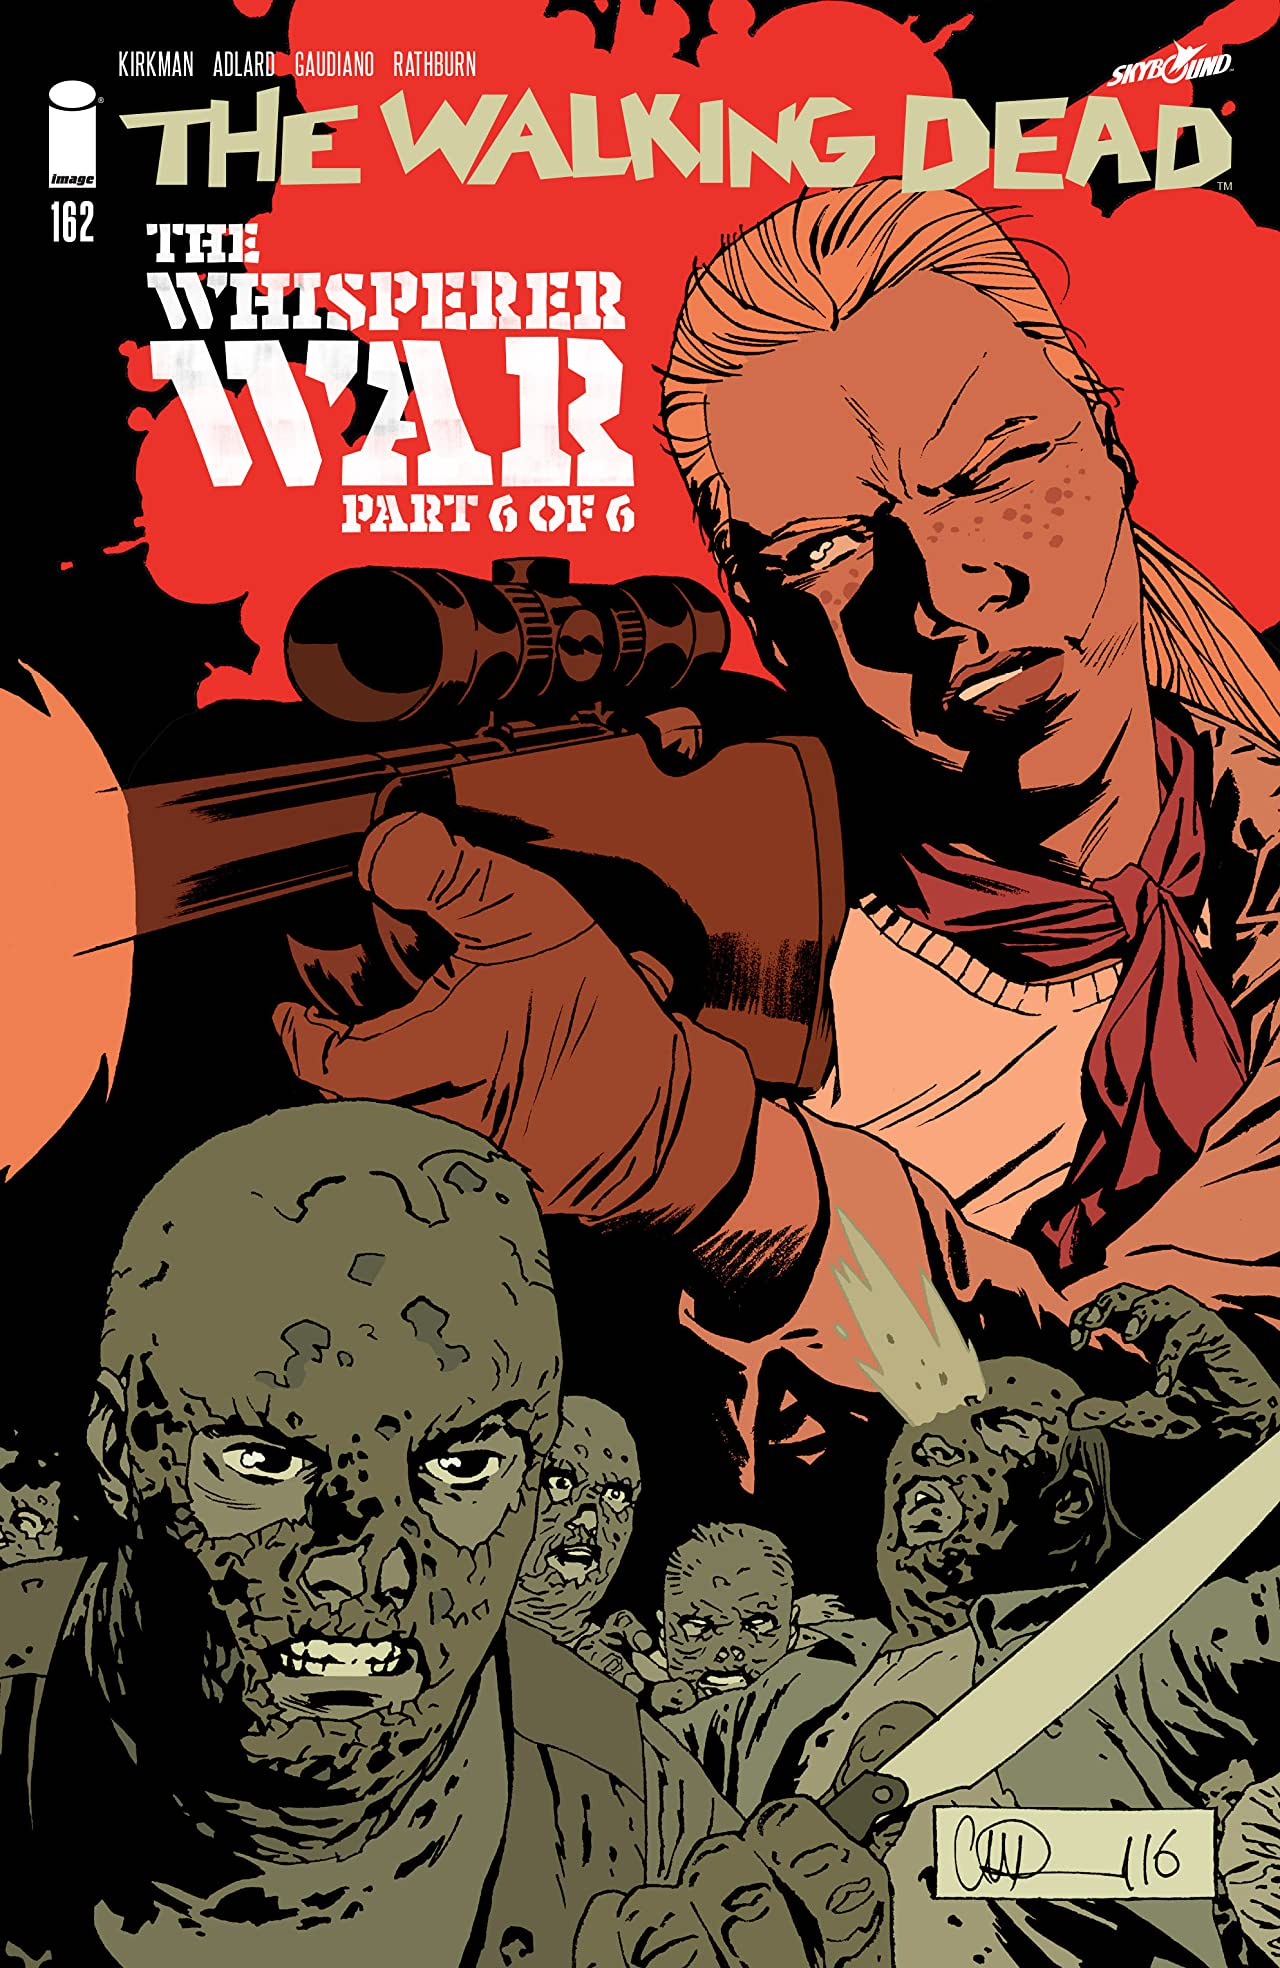 The Walking Dead #162